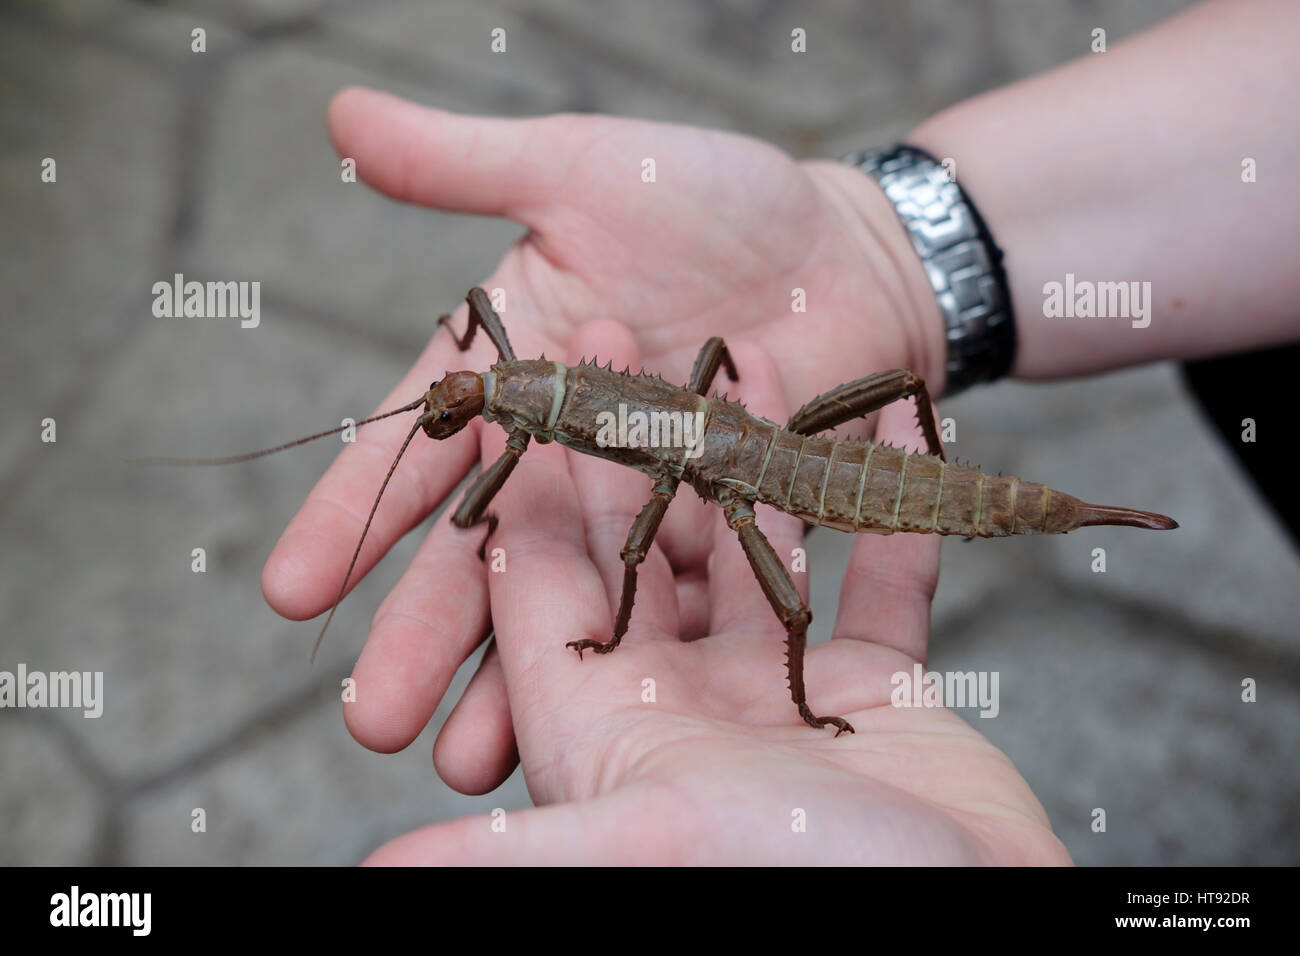 Spiny Stick Insect Stockfotos & Spiny Stick Insect Bilder - Alamy